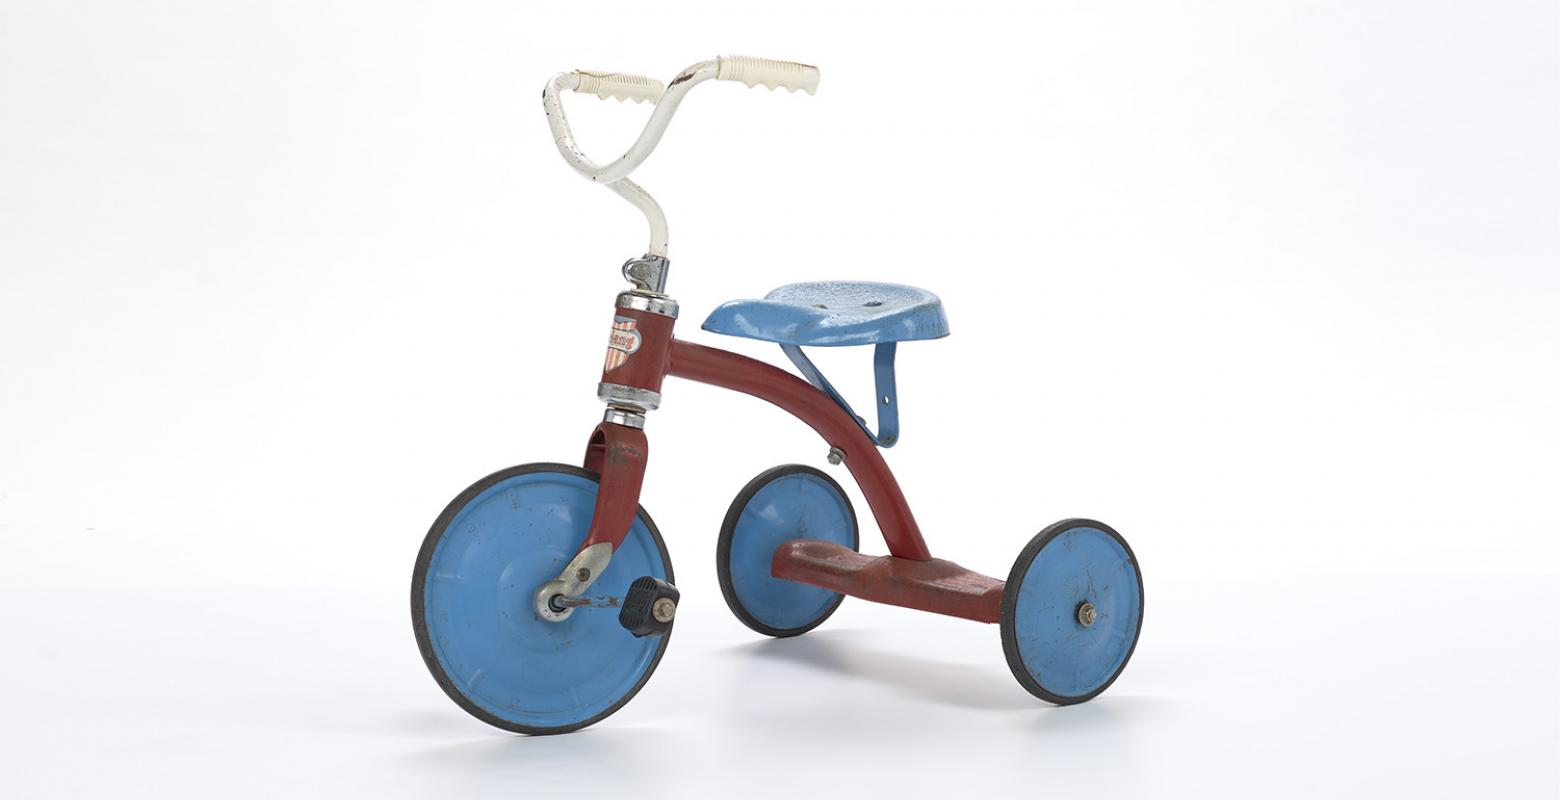 A blue, red and white tricycle